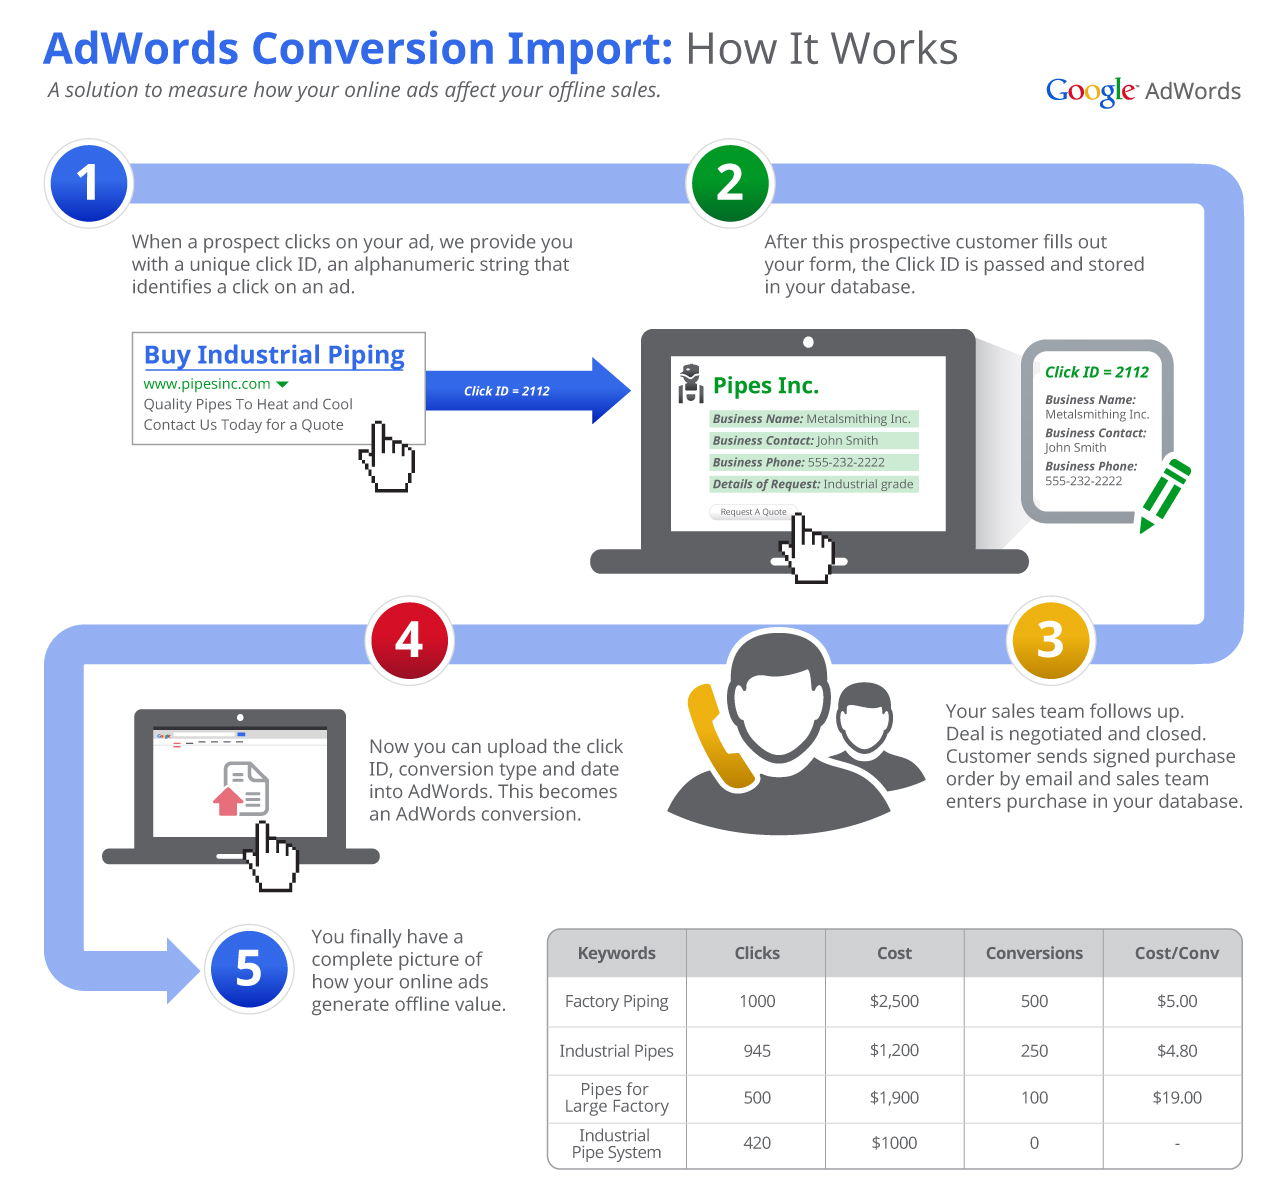 Tracking Offline Conversions in Adwords